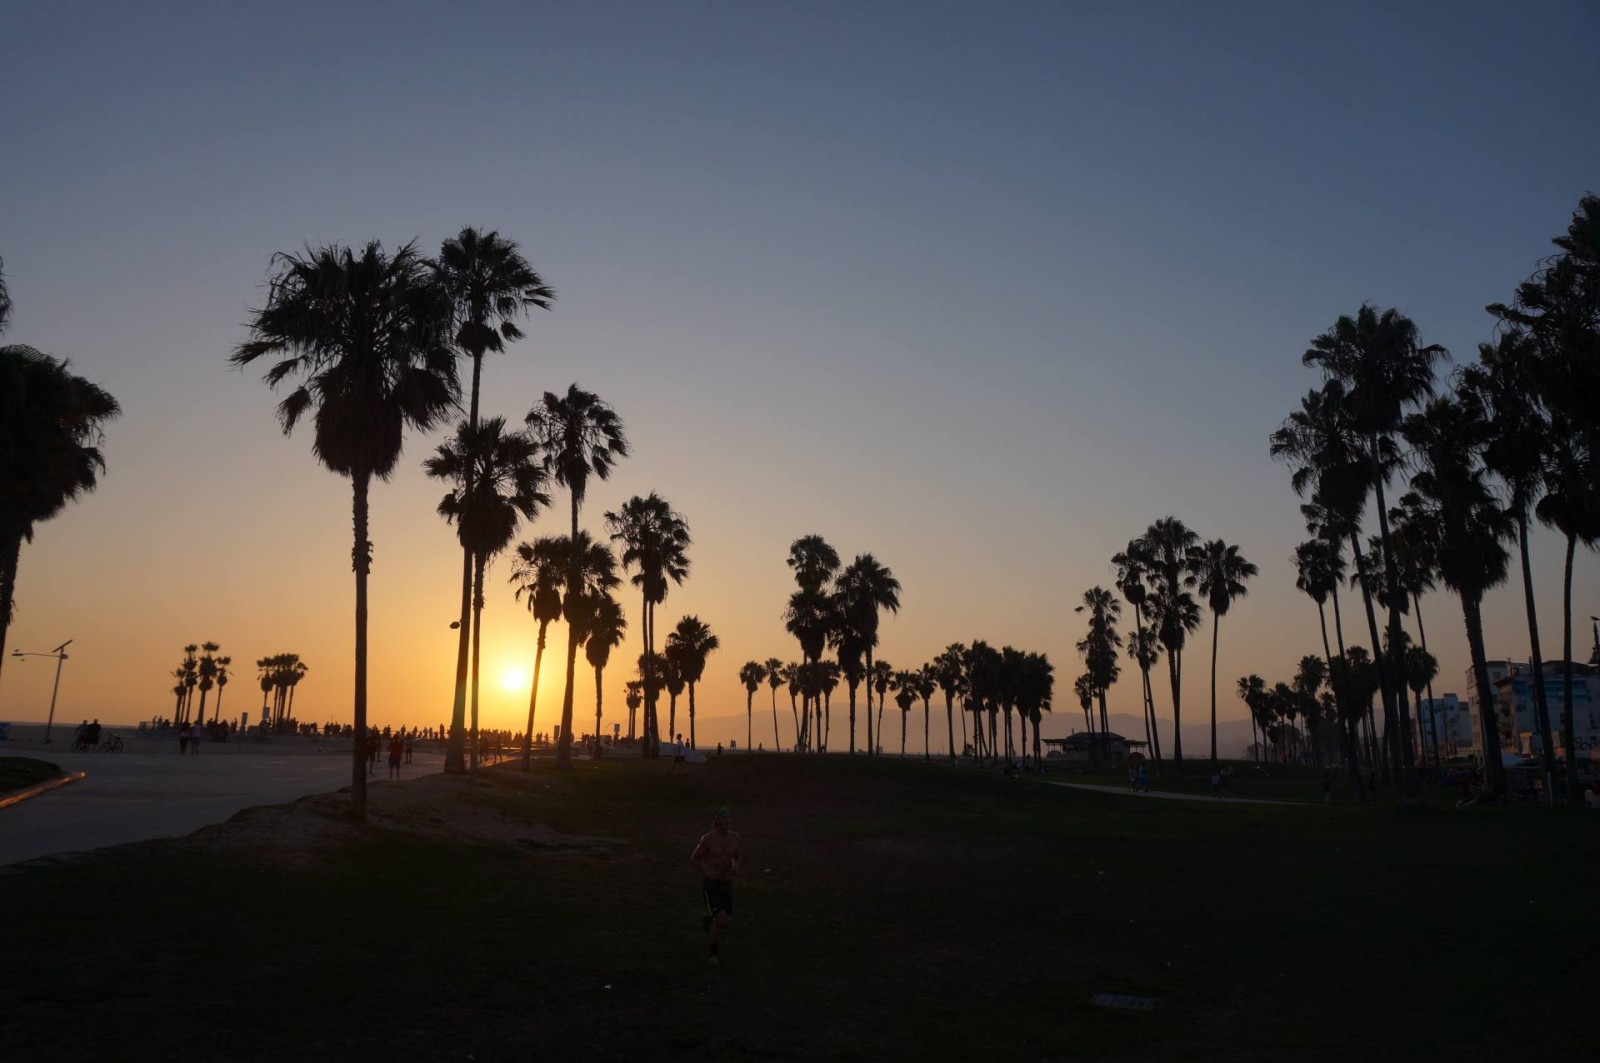 VENICE BEACH : CALIFORNIAN WAY OF LIFE